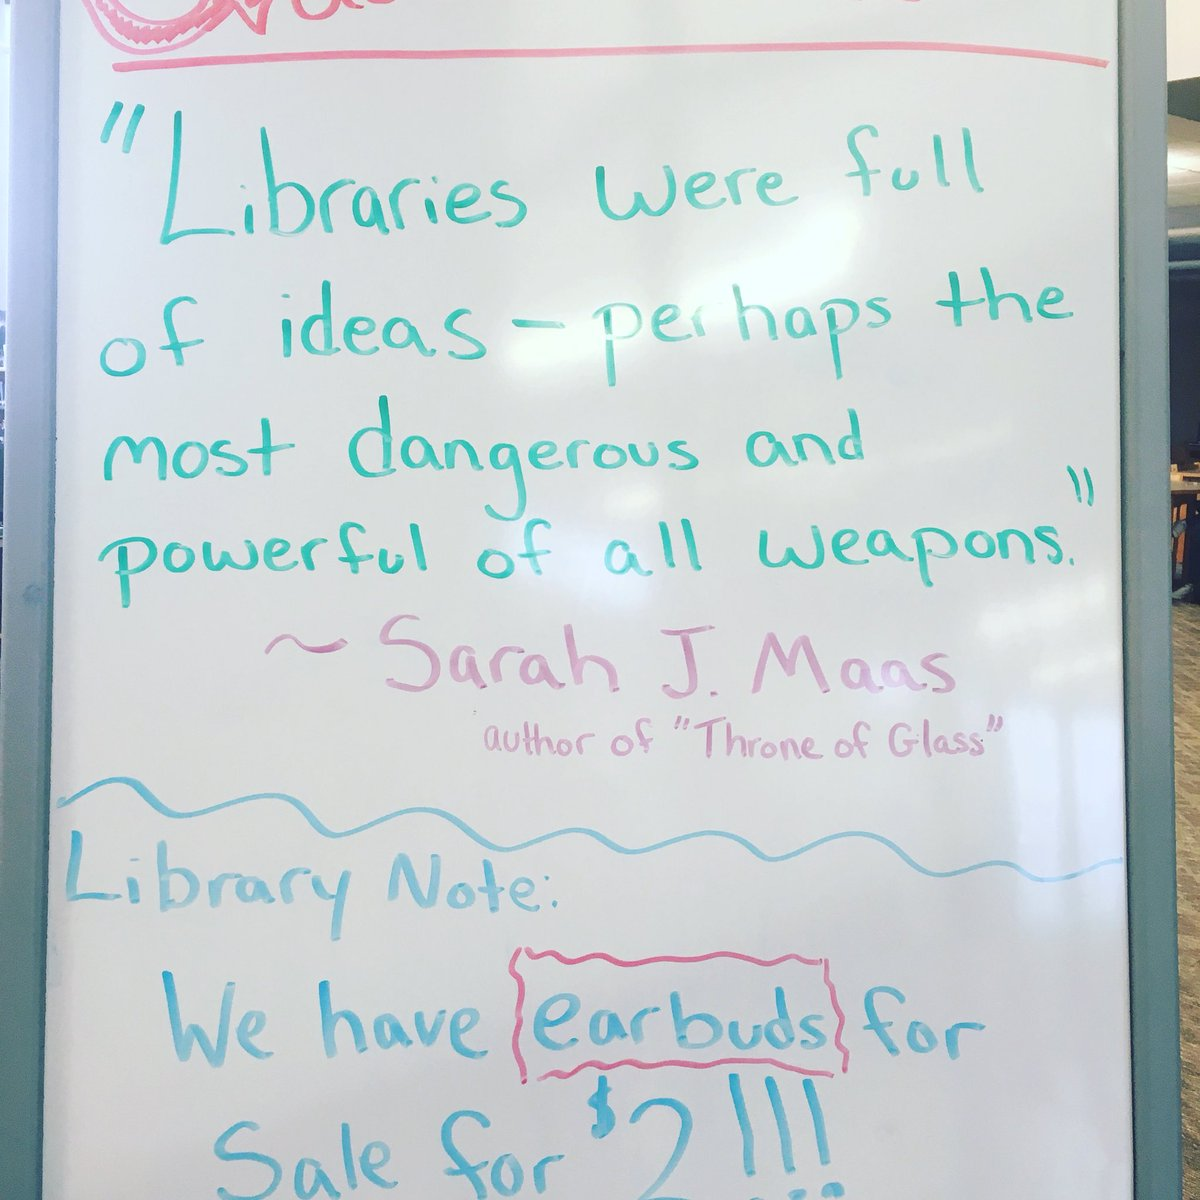 Starting a new tradition at NGC with our Author Quote of the Week. We are featuring one of my favorite author's this week, #sarahjmaas #authorquoteoftheweek<br>http://pic.twitter.com/5r9loSSlue